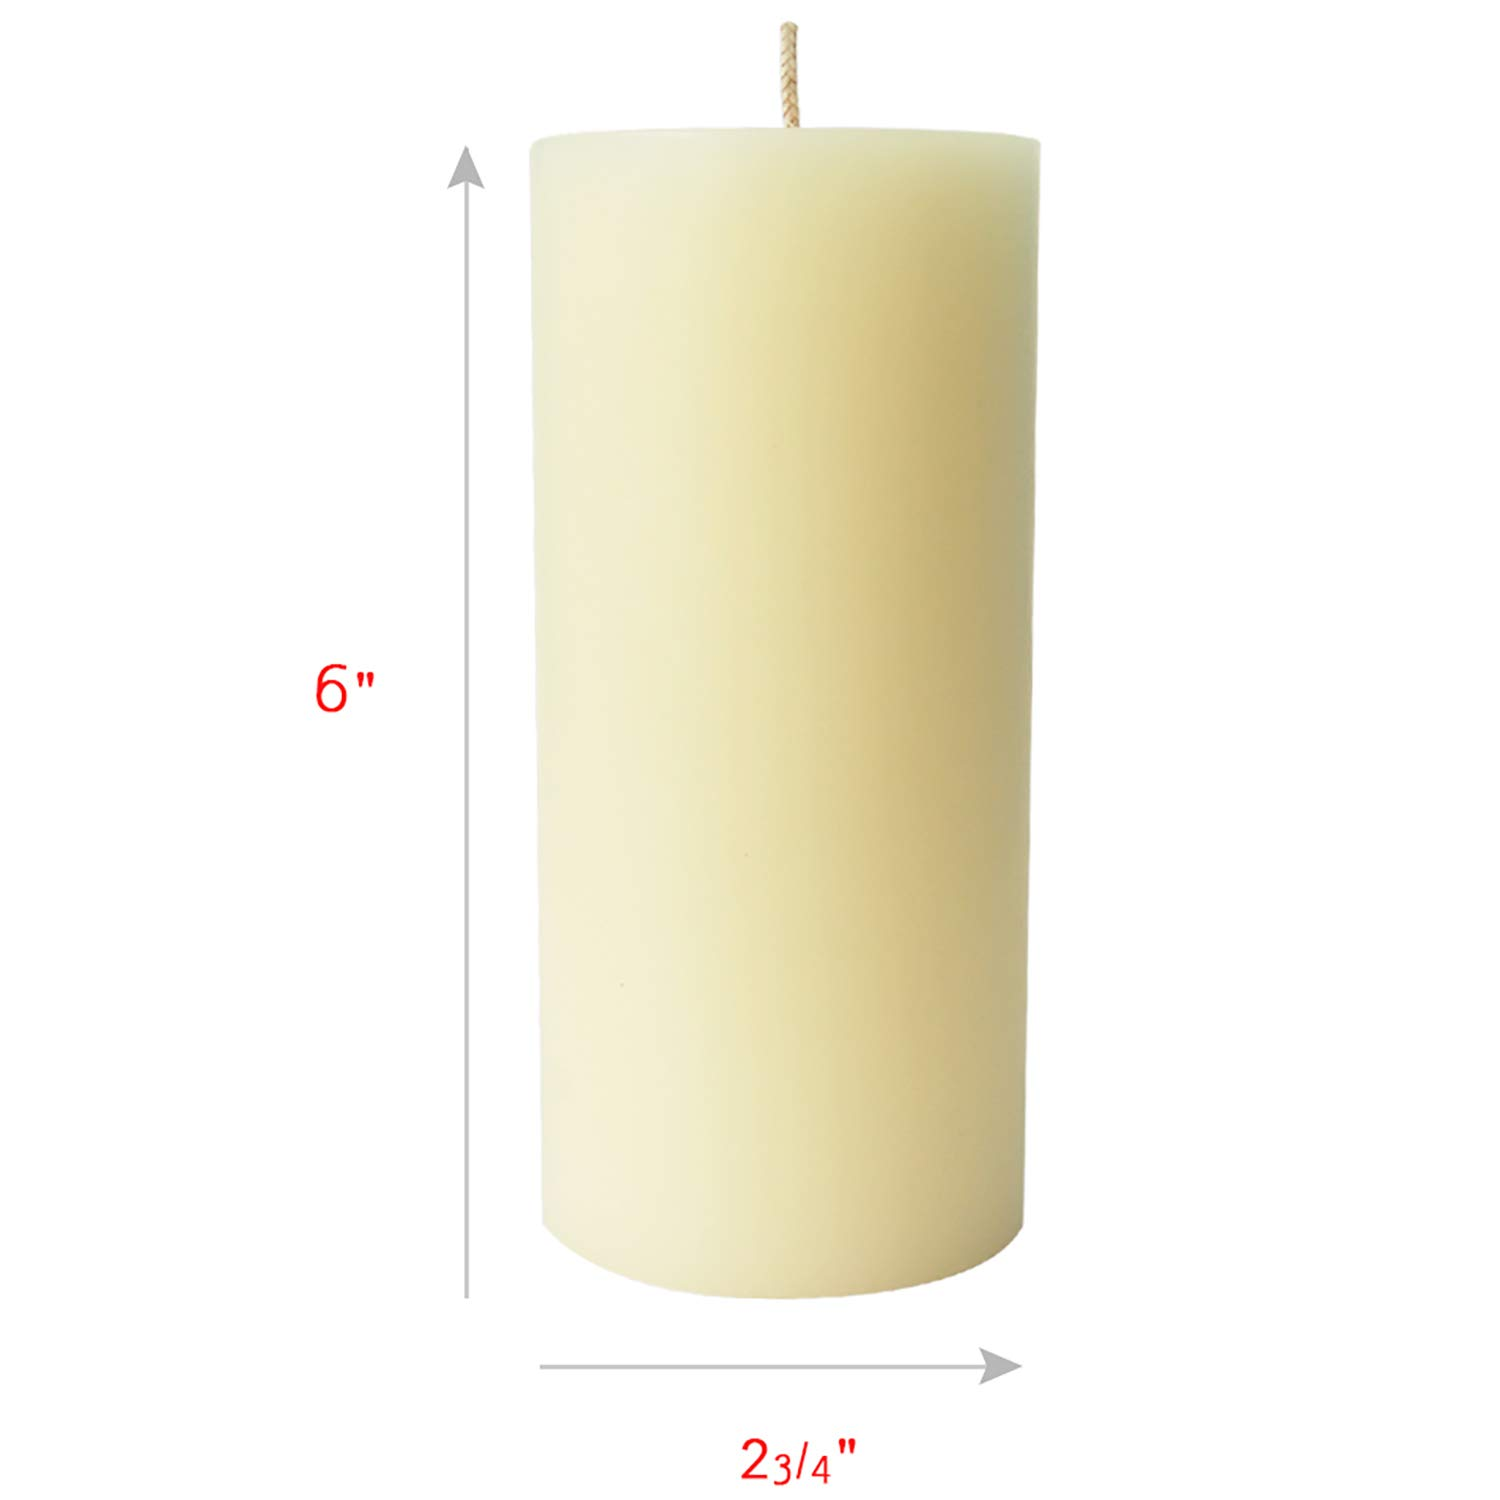 Simply Soson 6 Ivory Pillar Candles 3x6 | unscented Pillar Candles | Dripless Pillar Candles Bulk (6 Pack) Code 2258 by Simply Soson (Image #1)